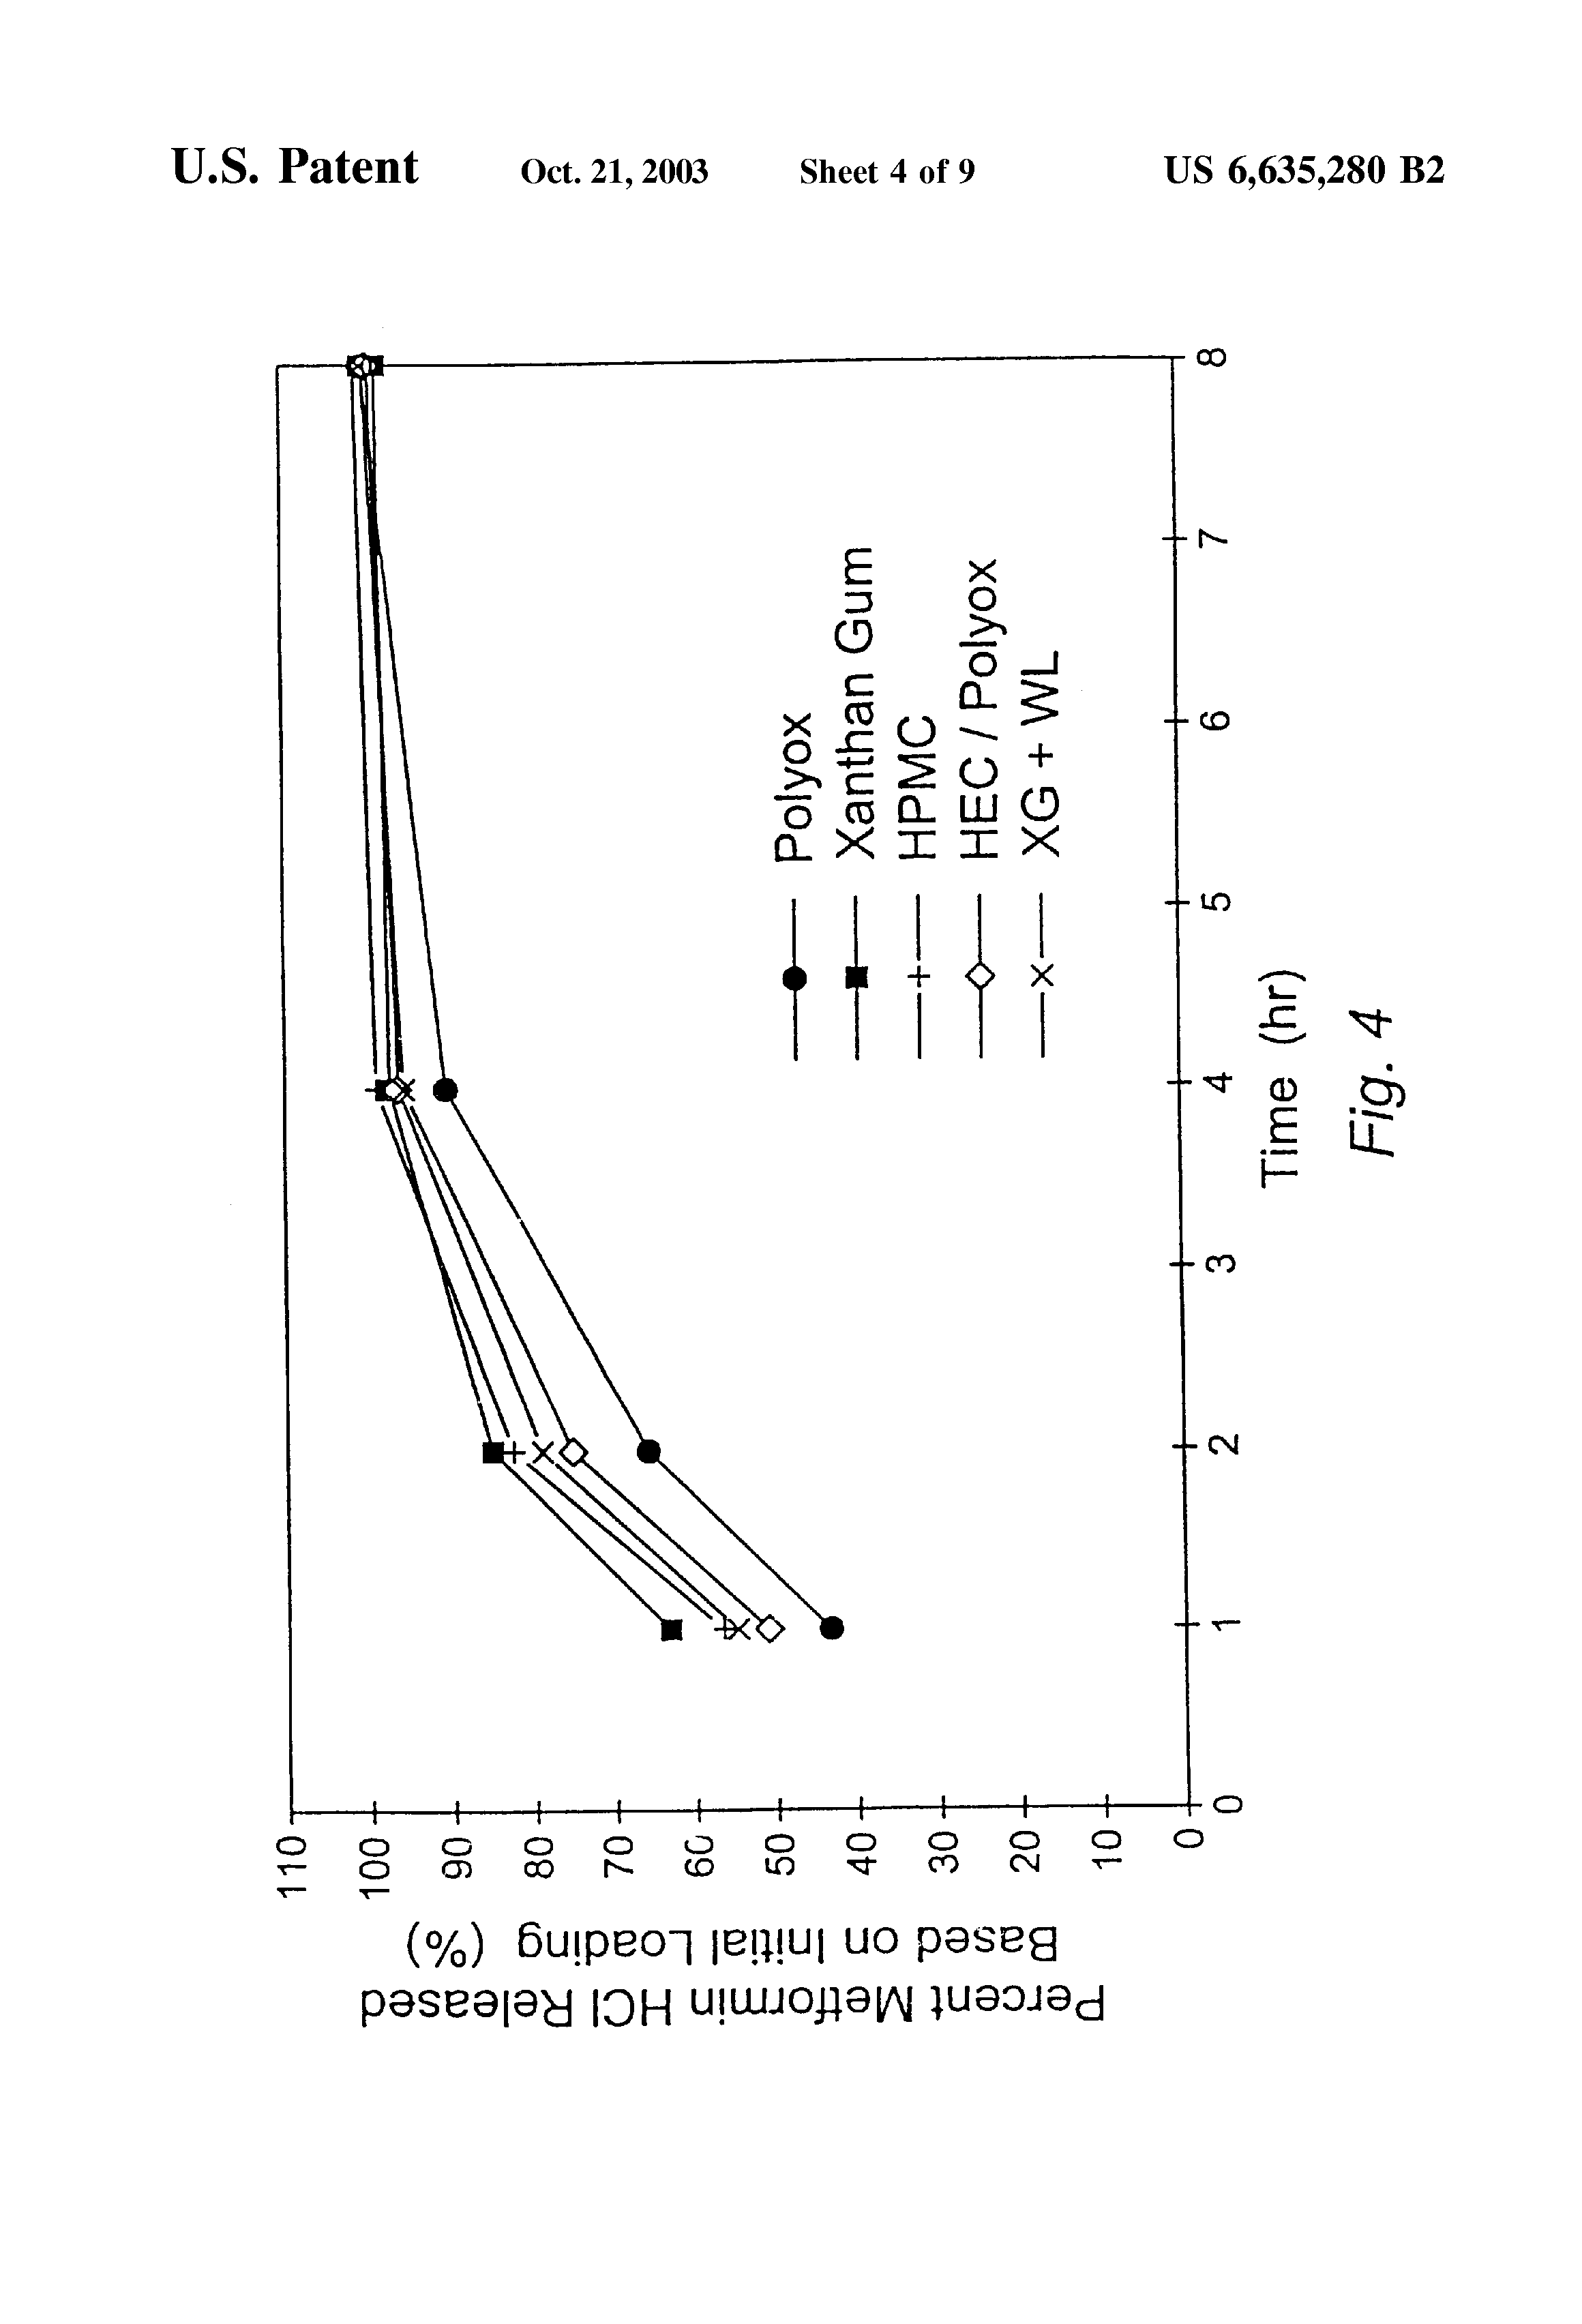 US 6635280 B2 - Extending The Duration Of Drug Release